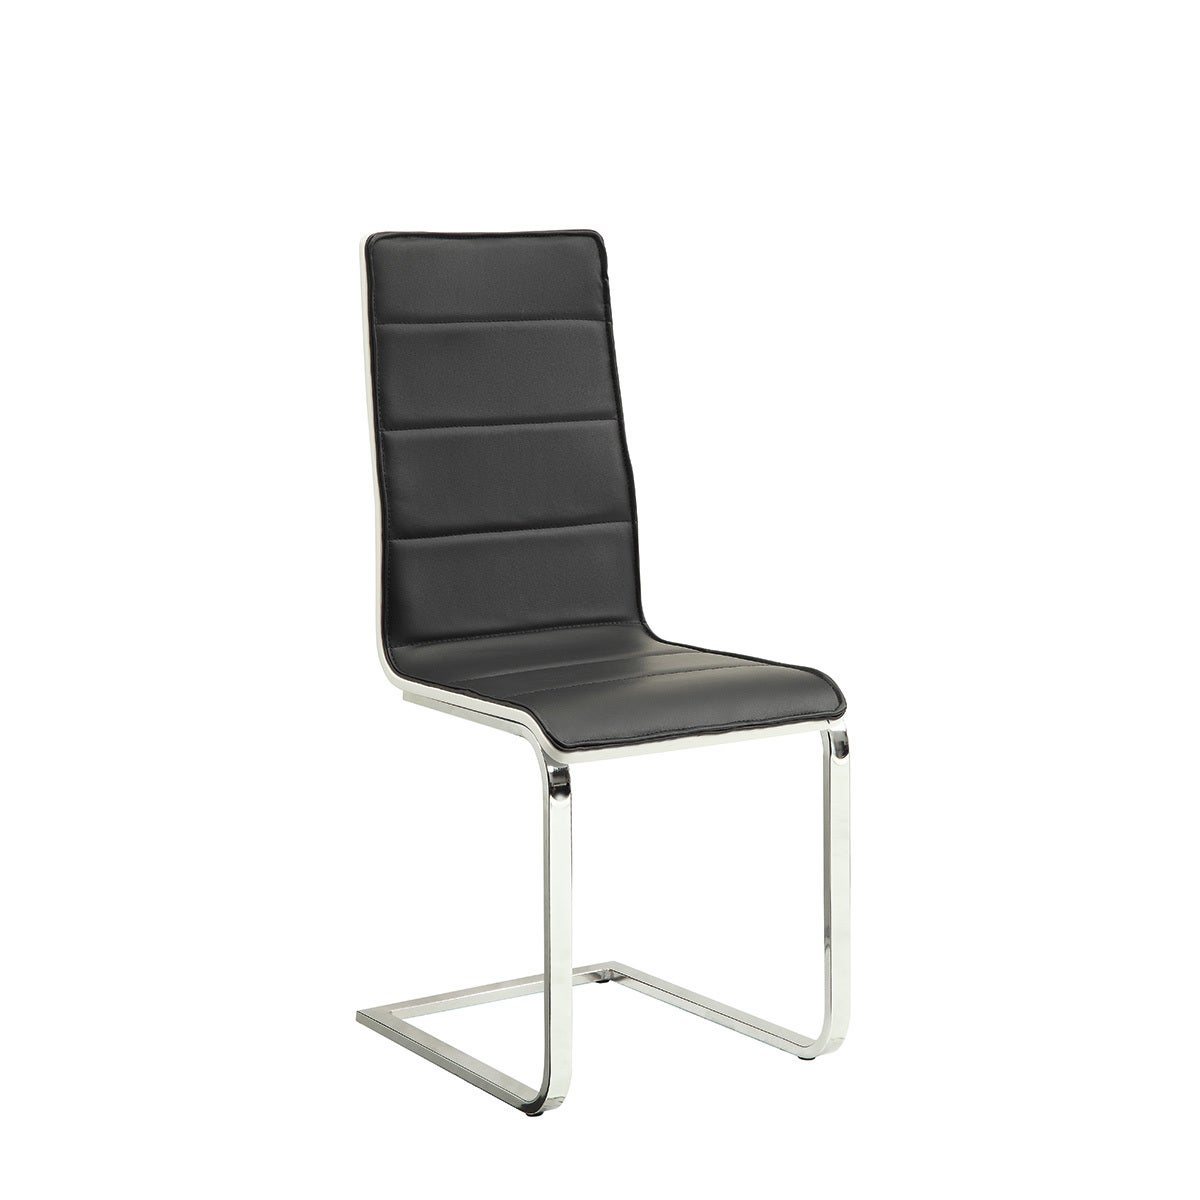 Coaster Furniture Faux Leather Chrome Legs Modern Dining ...